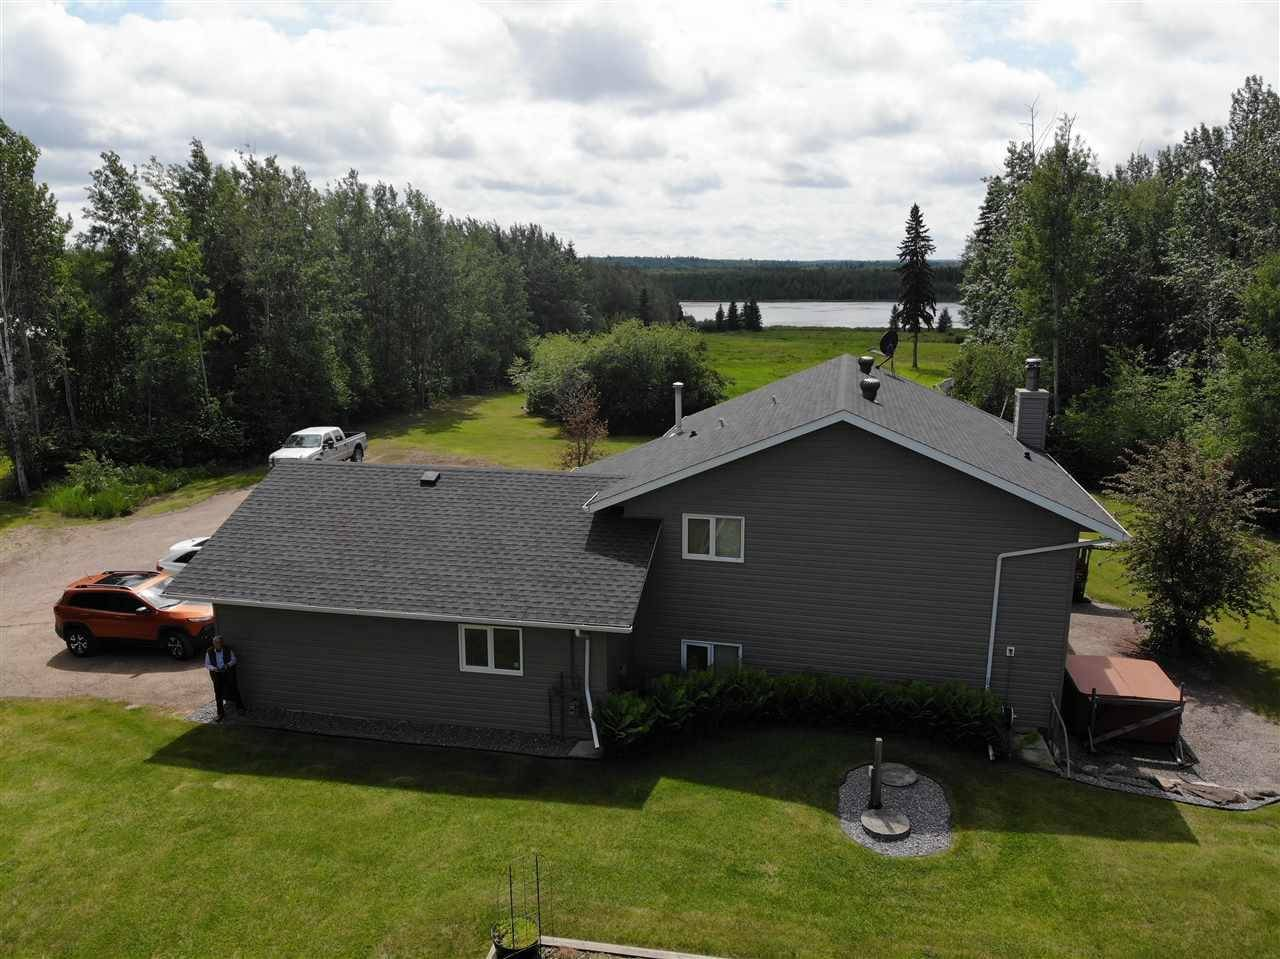 House for sale at 274043 Twprd480  Rural Wetaskiwin County Alberta - MLS: E4190416